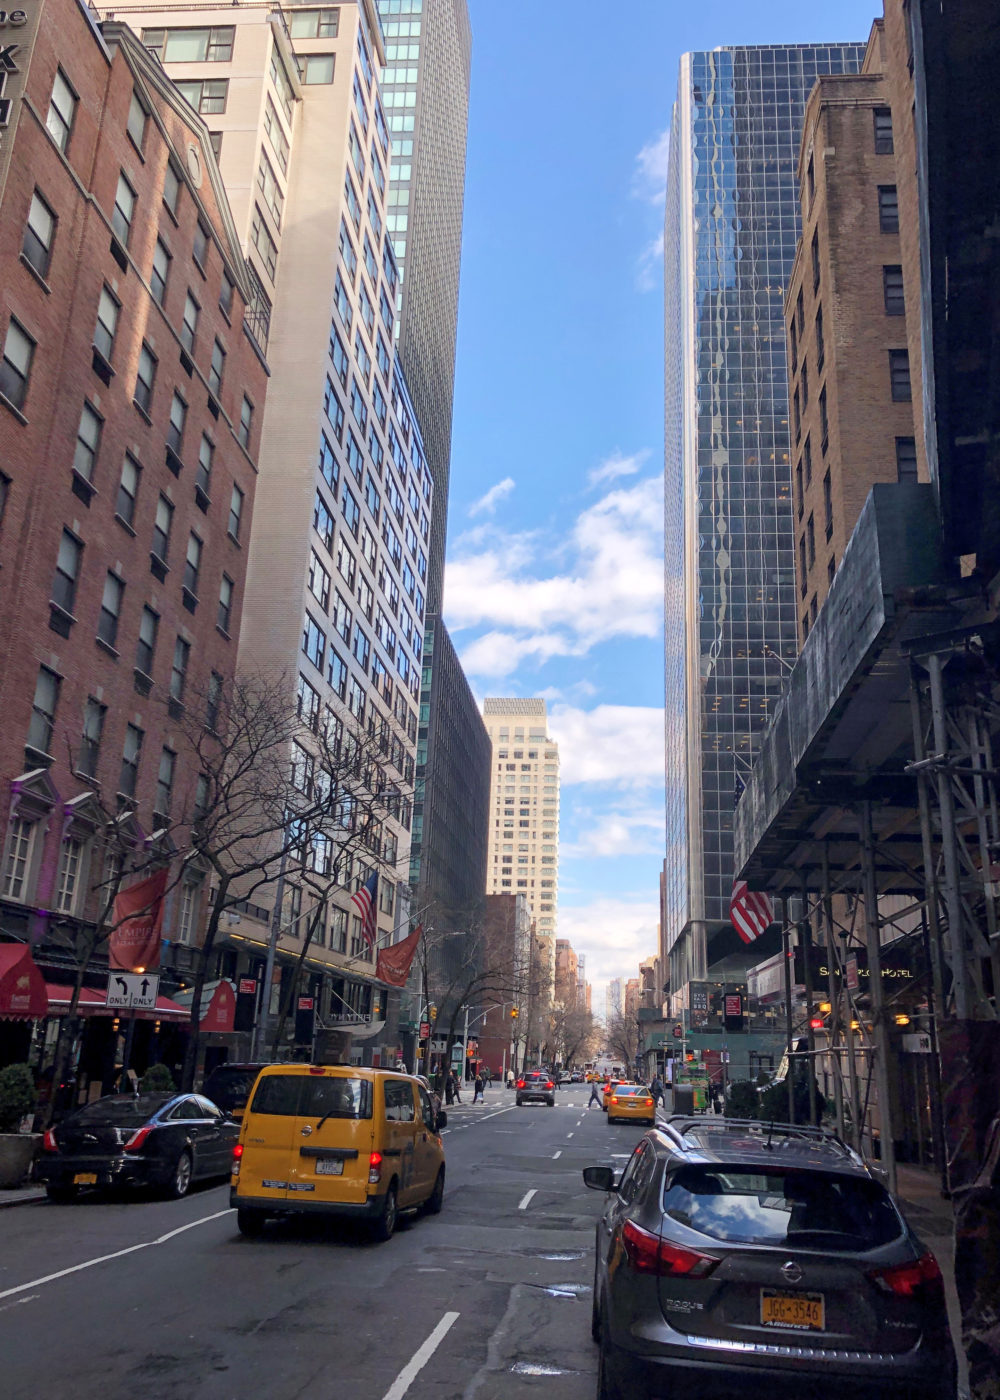 Affordable NYC Travel Guide I Transportation #NYC #TRavel #TravelGuide